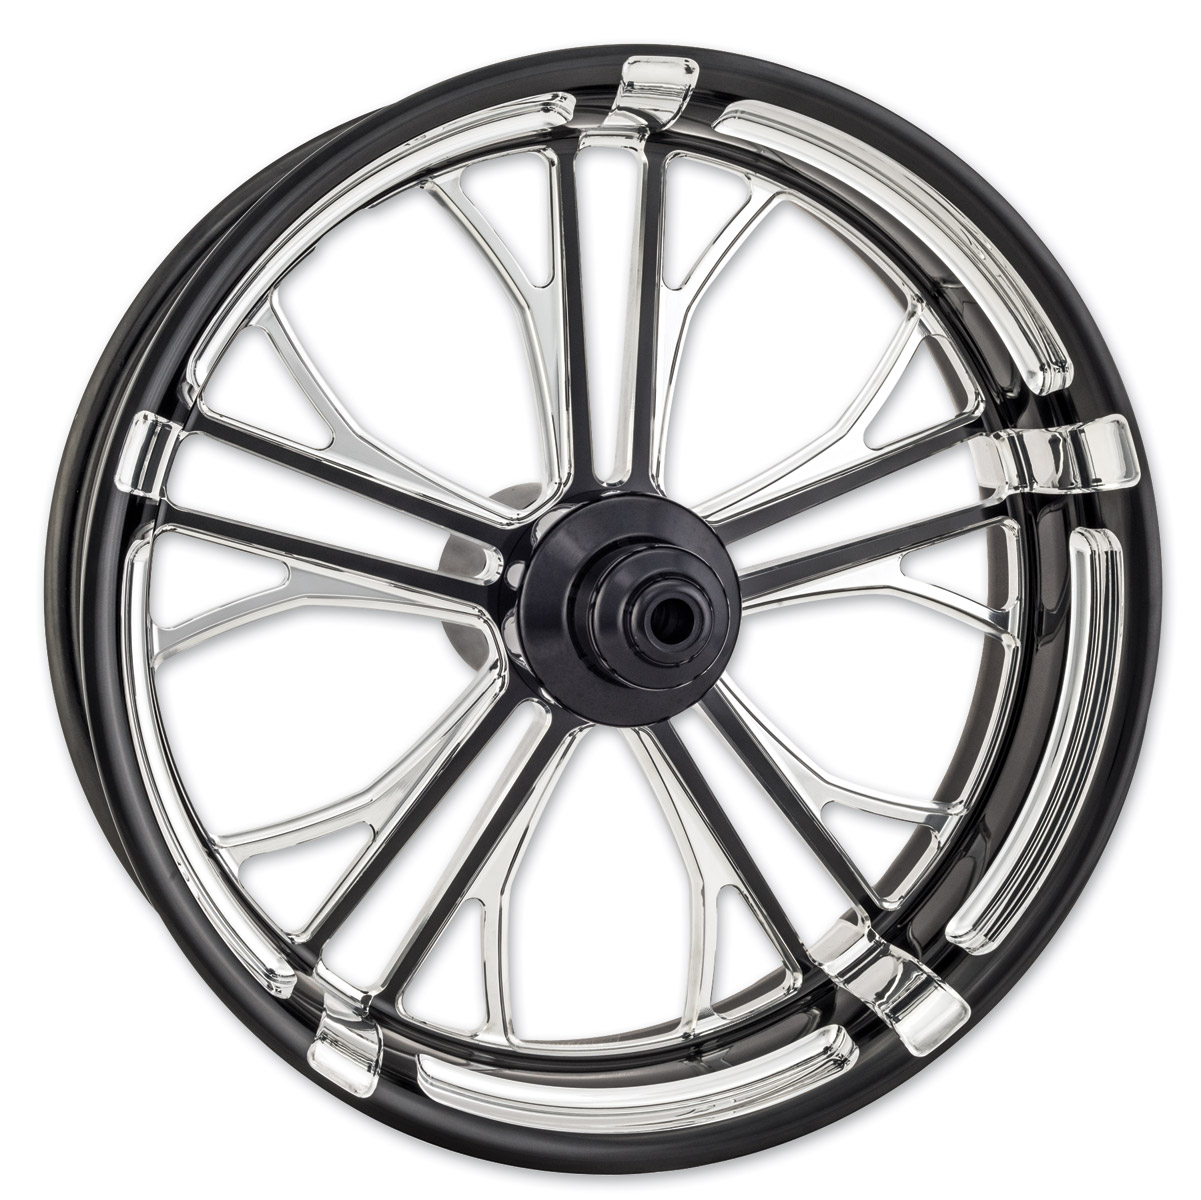 Performance Machine Contrast Cut Platinum Forged Dixon Rear Wheel, 18